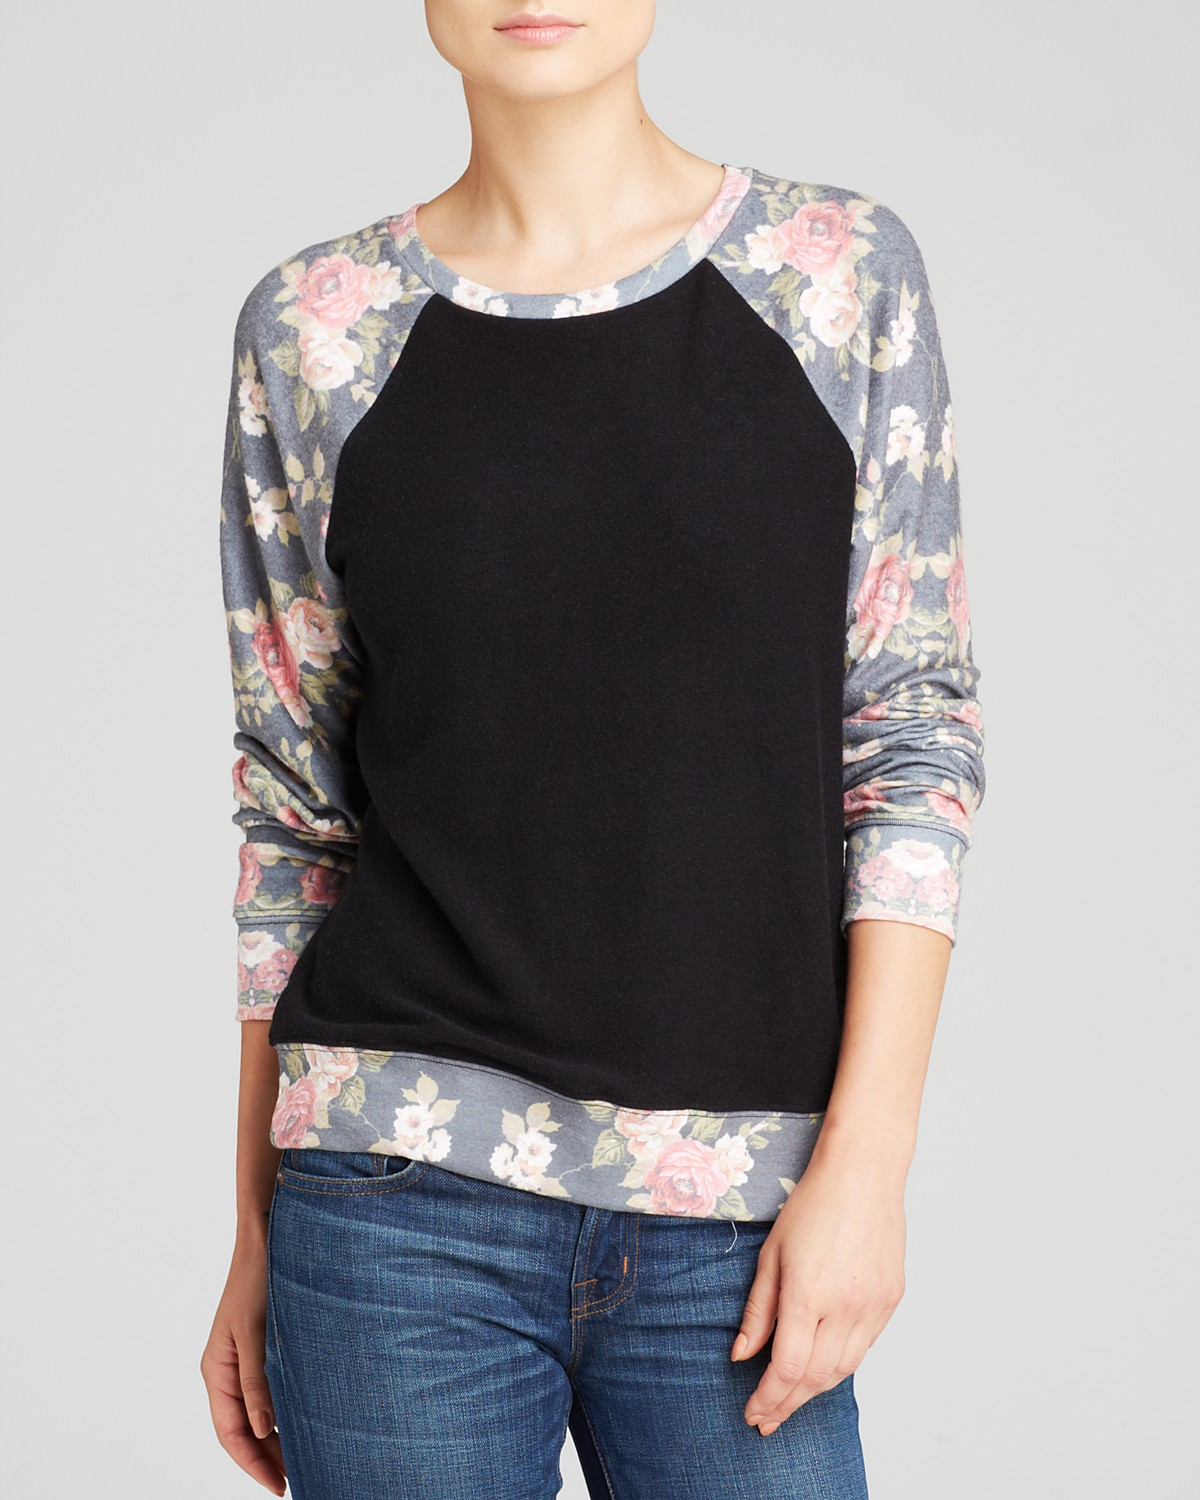 WILDFOX Pullover - Black Rose | Bloomingdale's